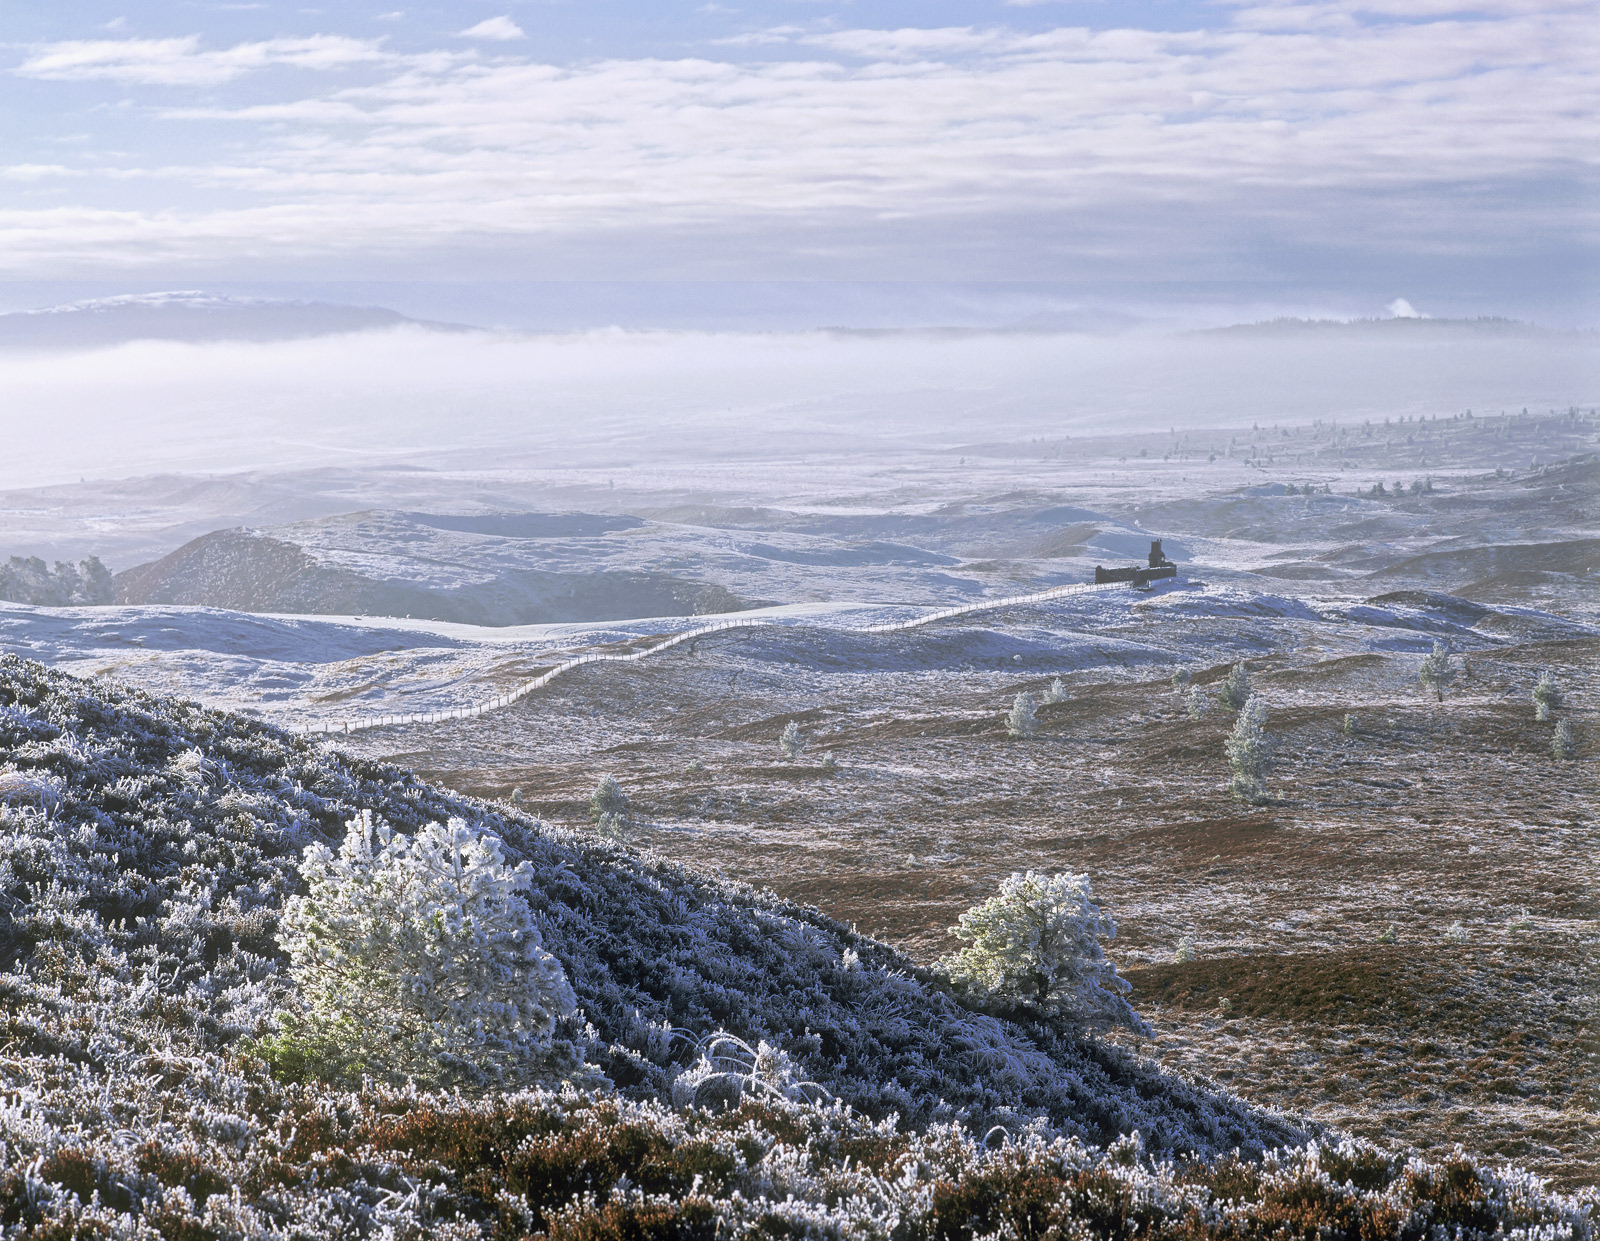 From this lofty viewpoint off the B road that crosses the Dava Moor you can see across most of the moor towards Carr Bridge and...